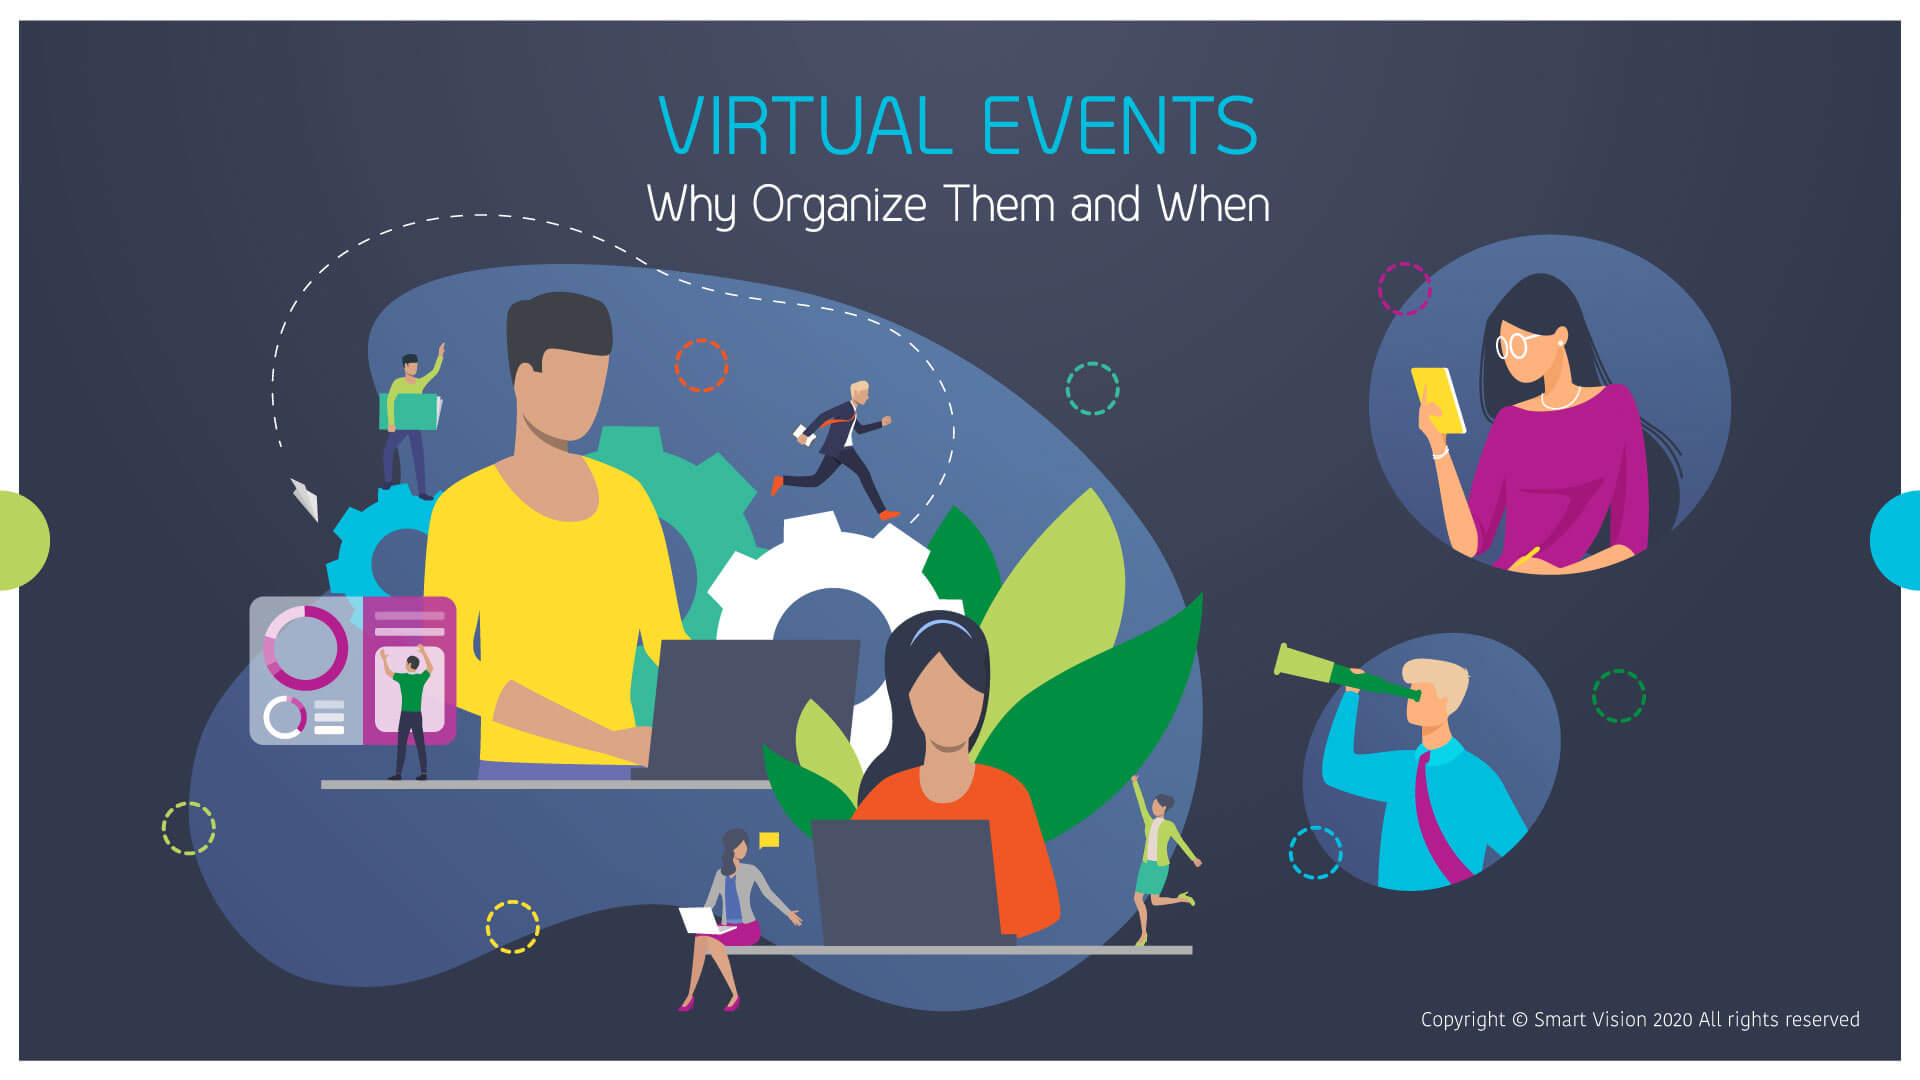 Smart Vison Blog - Virtual Events - Why Organize Them And When -